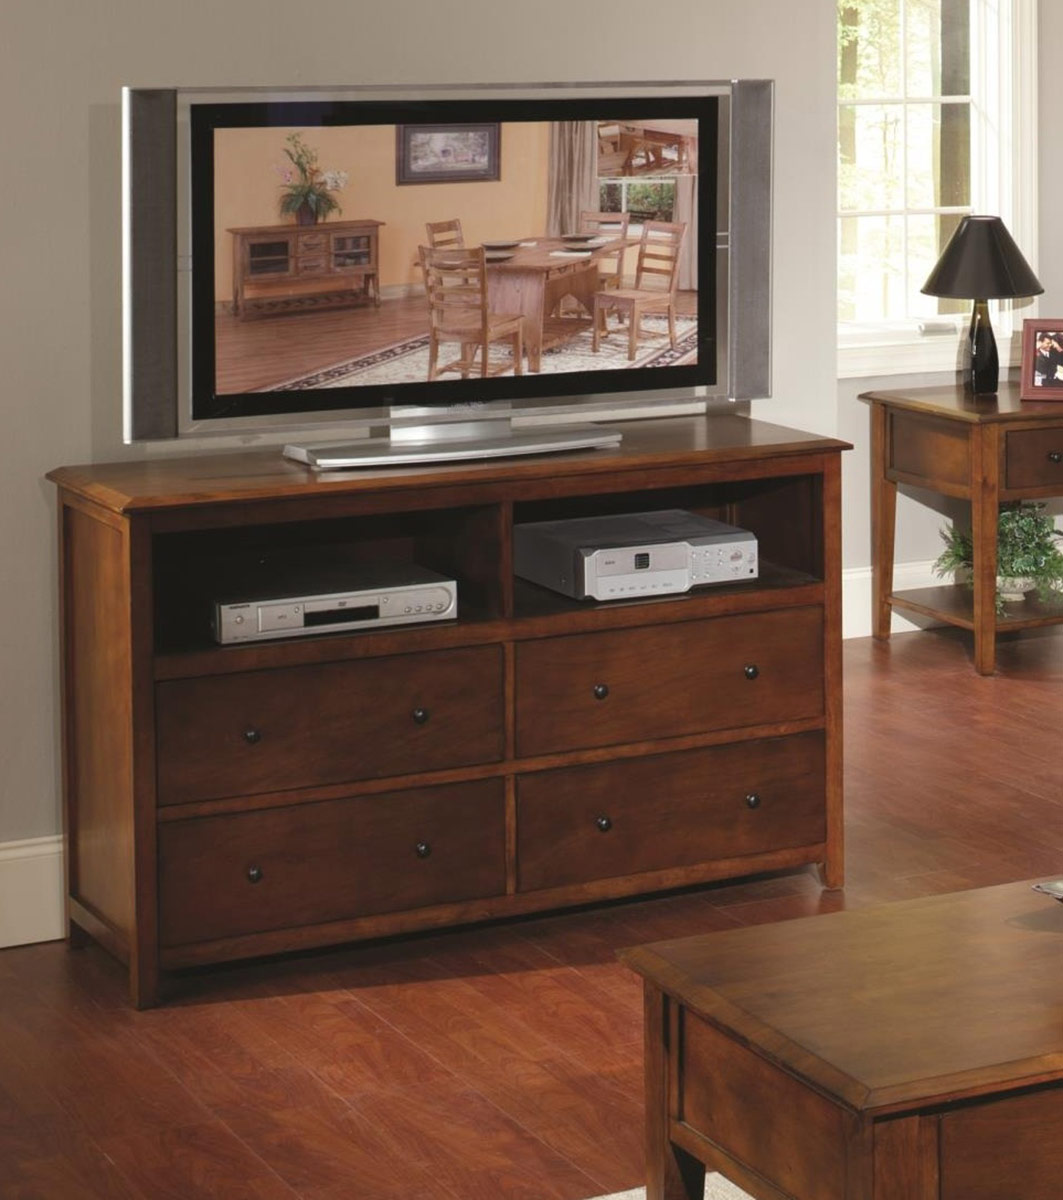 Chelsea Home Becket Entertainment Center - Tobacco